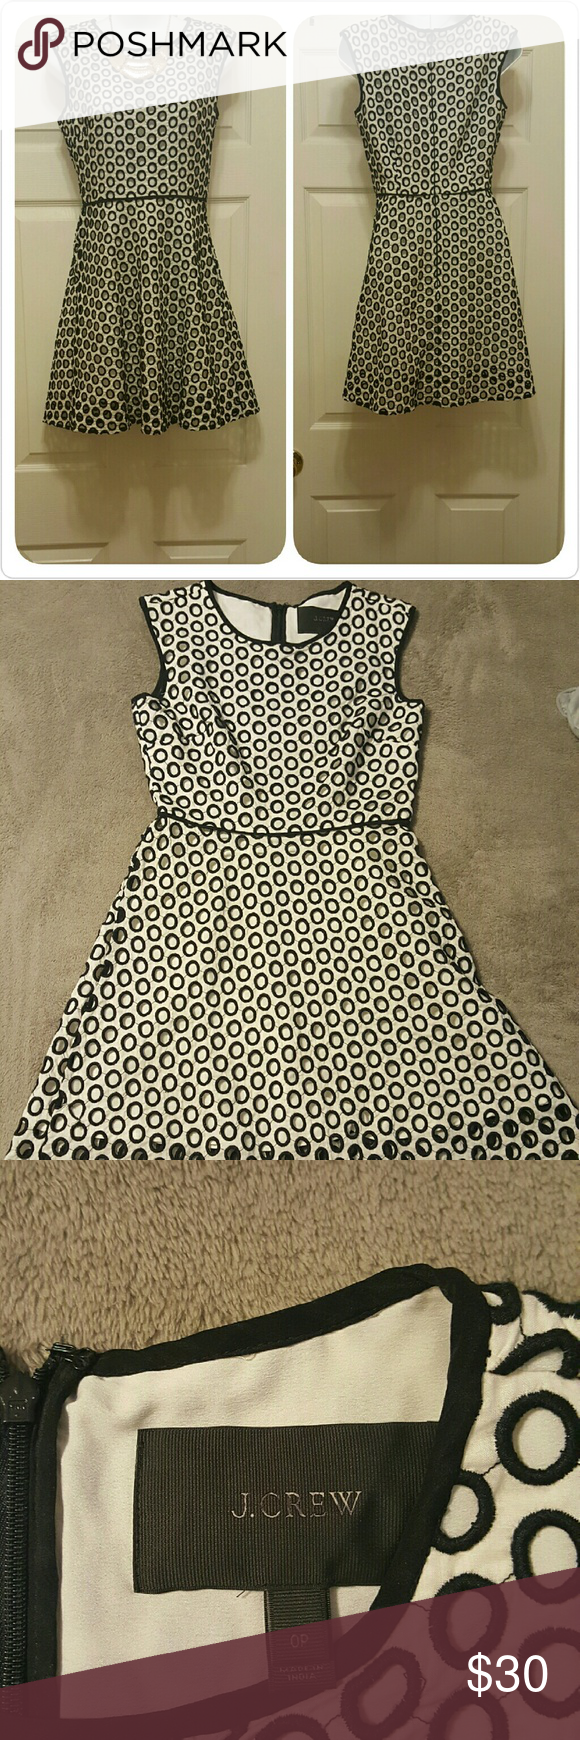 J.Crew winter white polka dot dress Gorgeous swing dress with seamless zipper and polka Dot cut outs Sz 00P J. Crew Dresses Asymmetrical